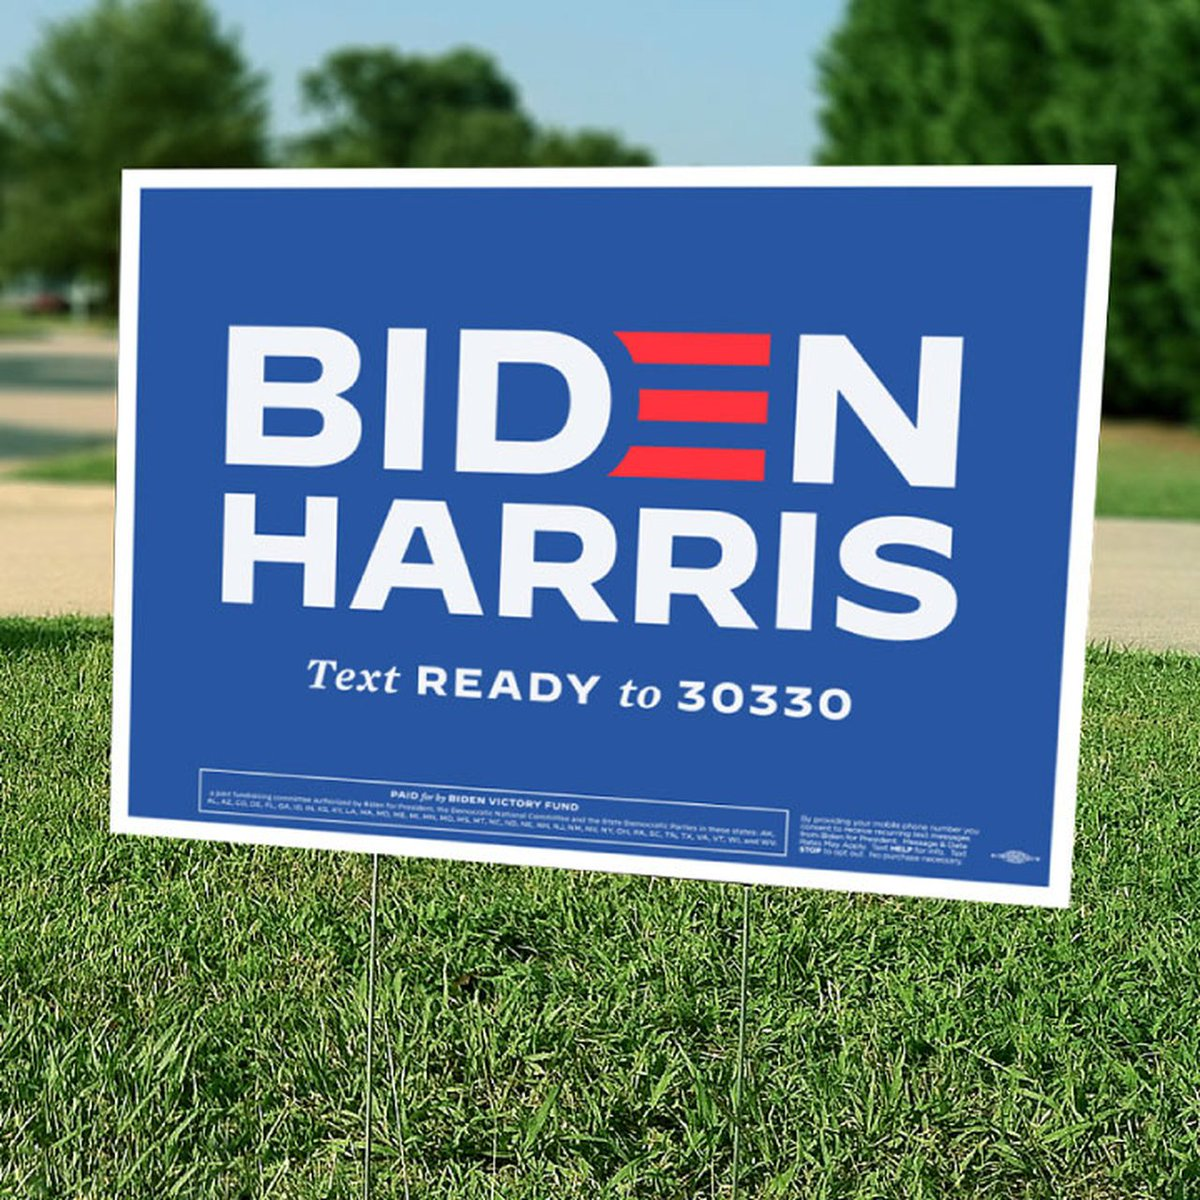 For the record and I admit, I was meh, meh, meh about Kamala. I thought Joe was boxed in gender-wise, and it was unfair that the outstanding Adam Schiff could not even be considered. Now, consider me convinced. All in. Just ordered this for my yard. #BidenHarris2020Landslide